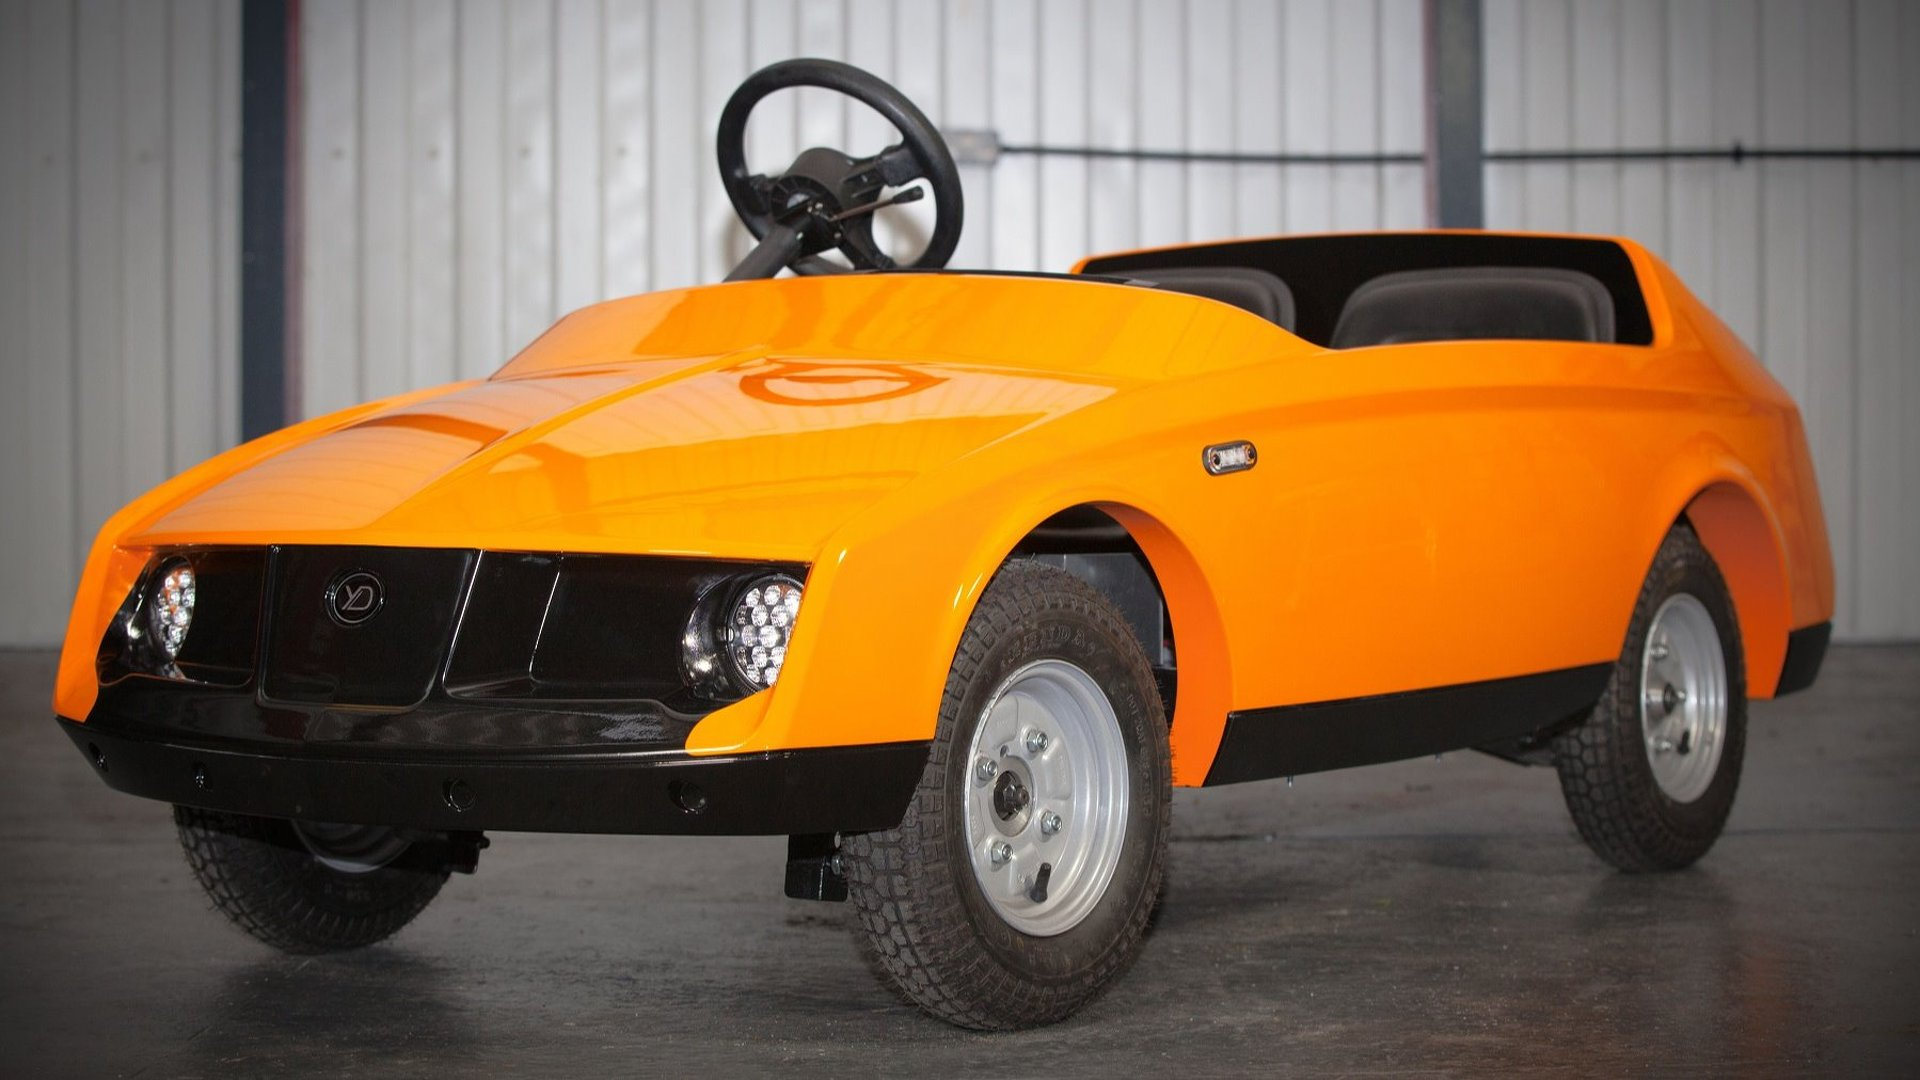 World's first purpose-built car for kids under 10 revealed